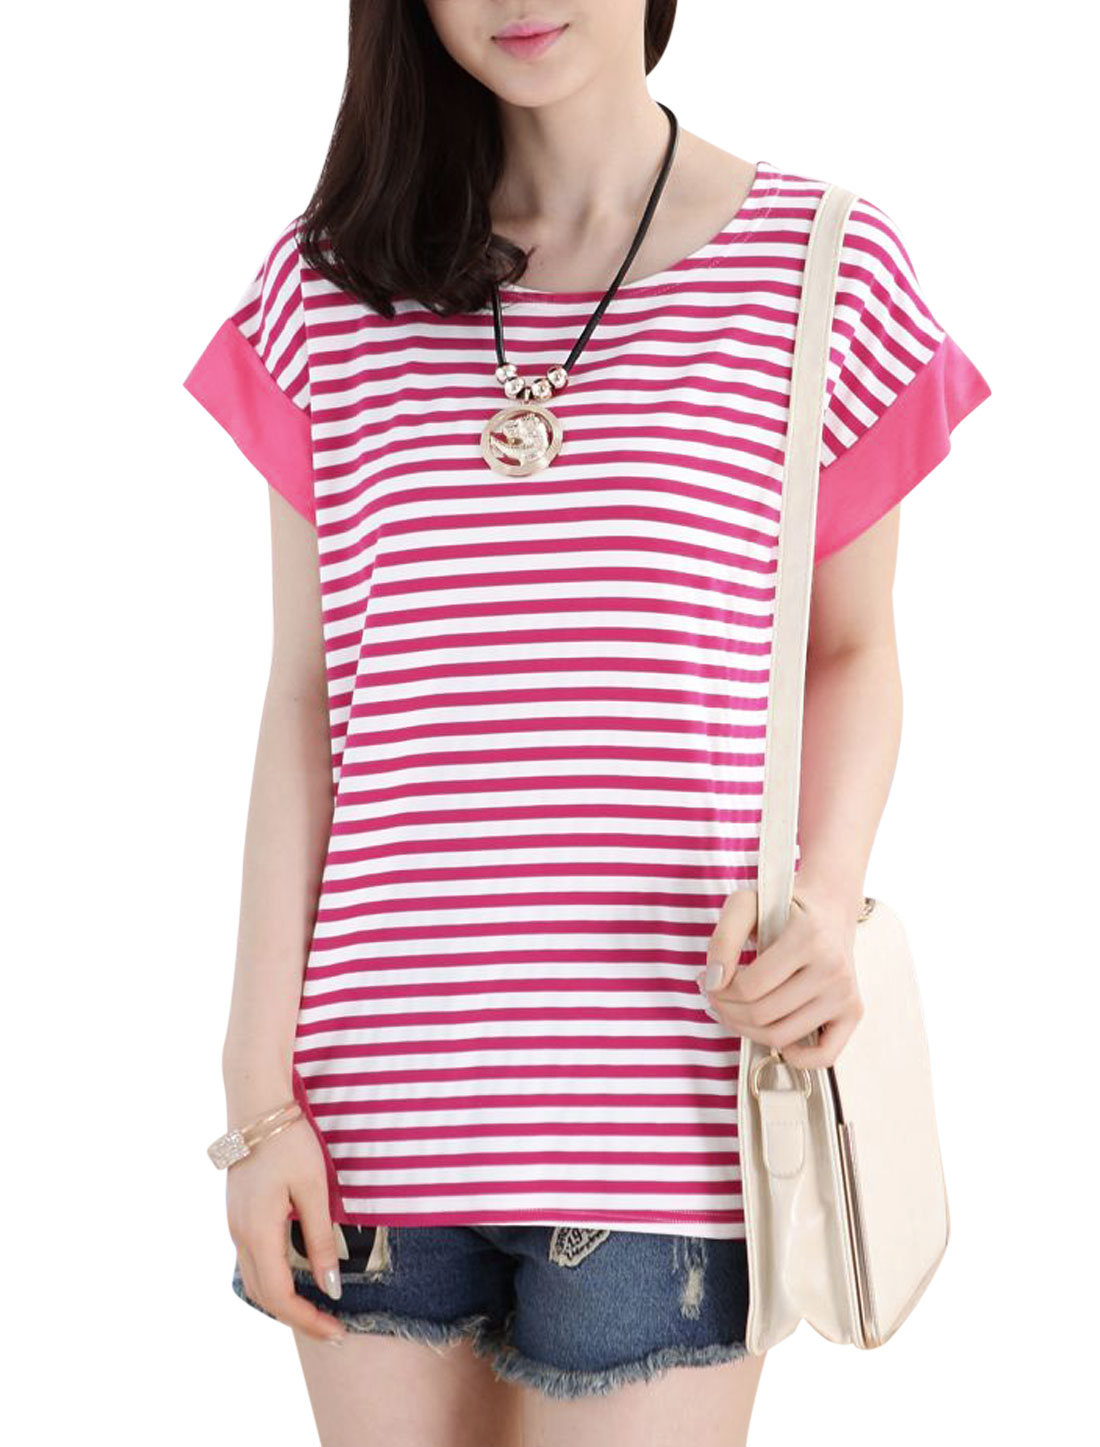 Lady Short Batwing Sleeve Stripes Panel Design Loose Fit T-Shirt Fuchsia S